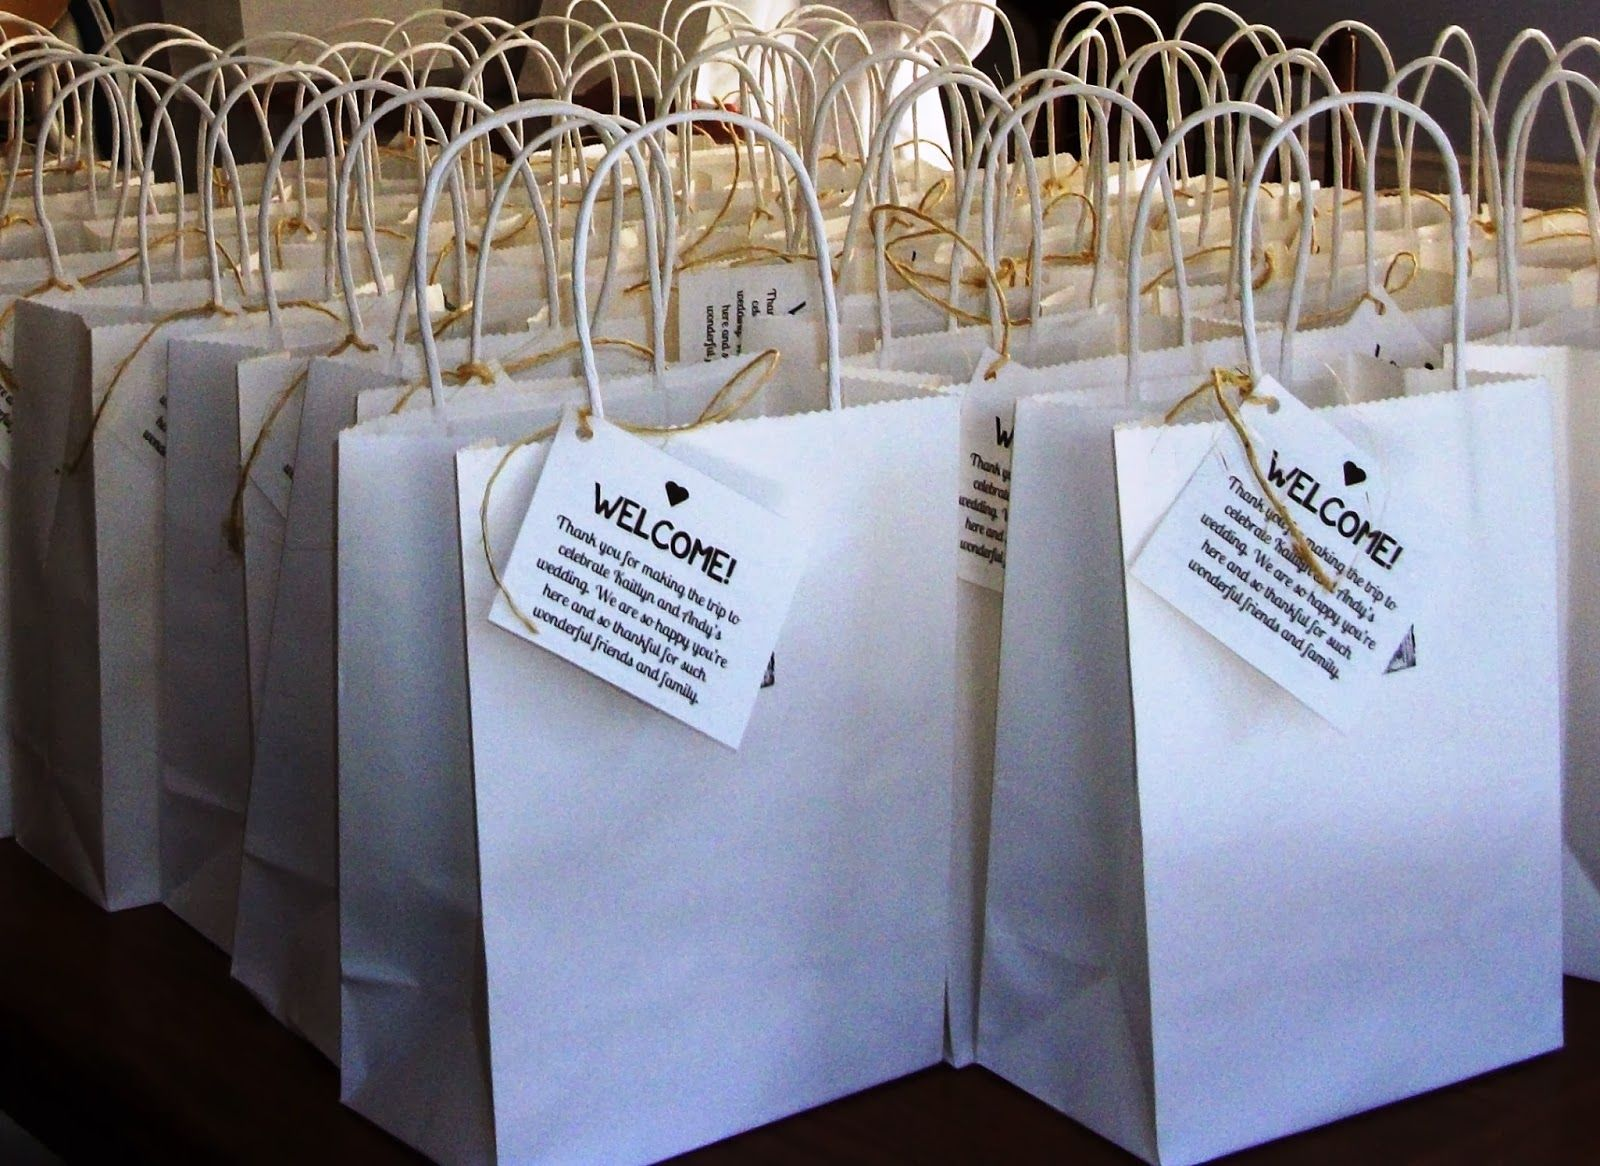 Gift Ideas For Wedding Guests At Hotel: Lovely Ache: Wedding Welcome Bags For Out-of-Town Guests